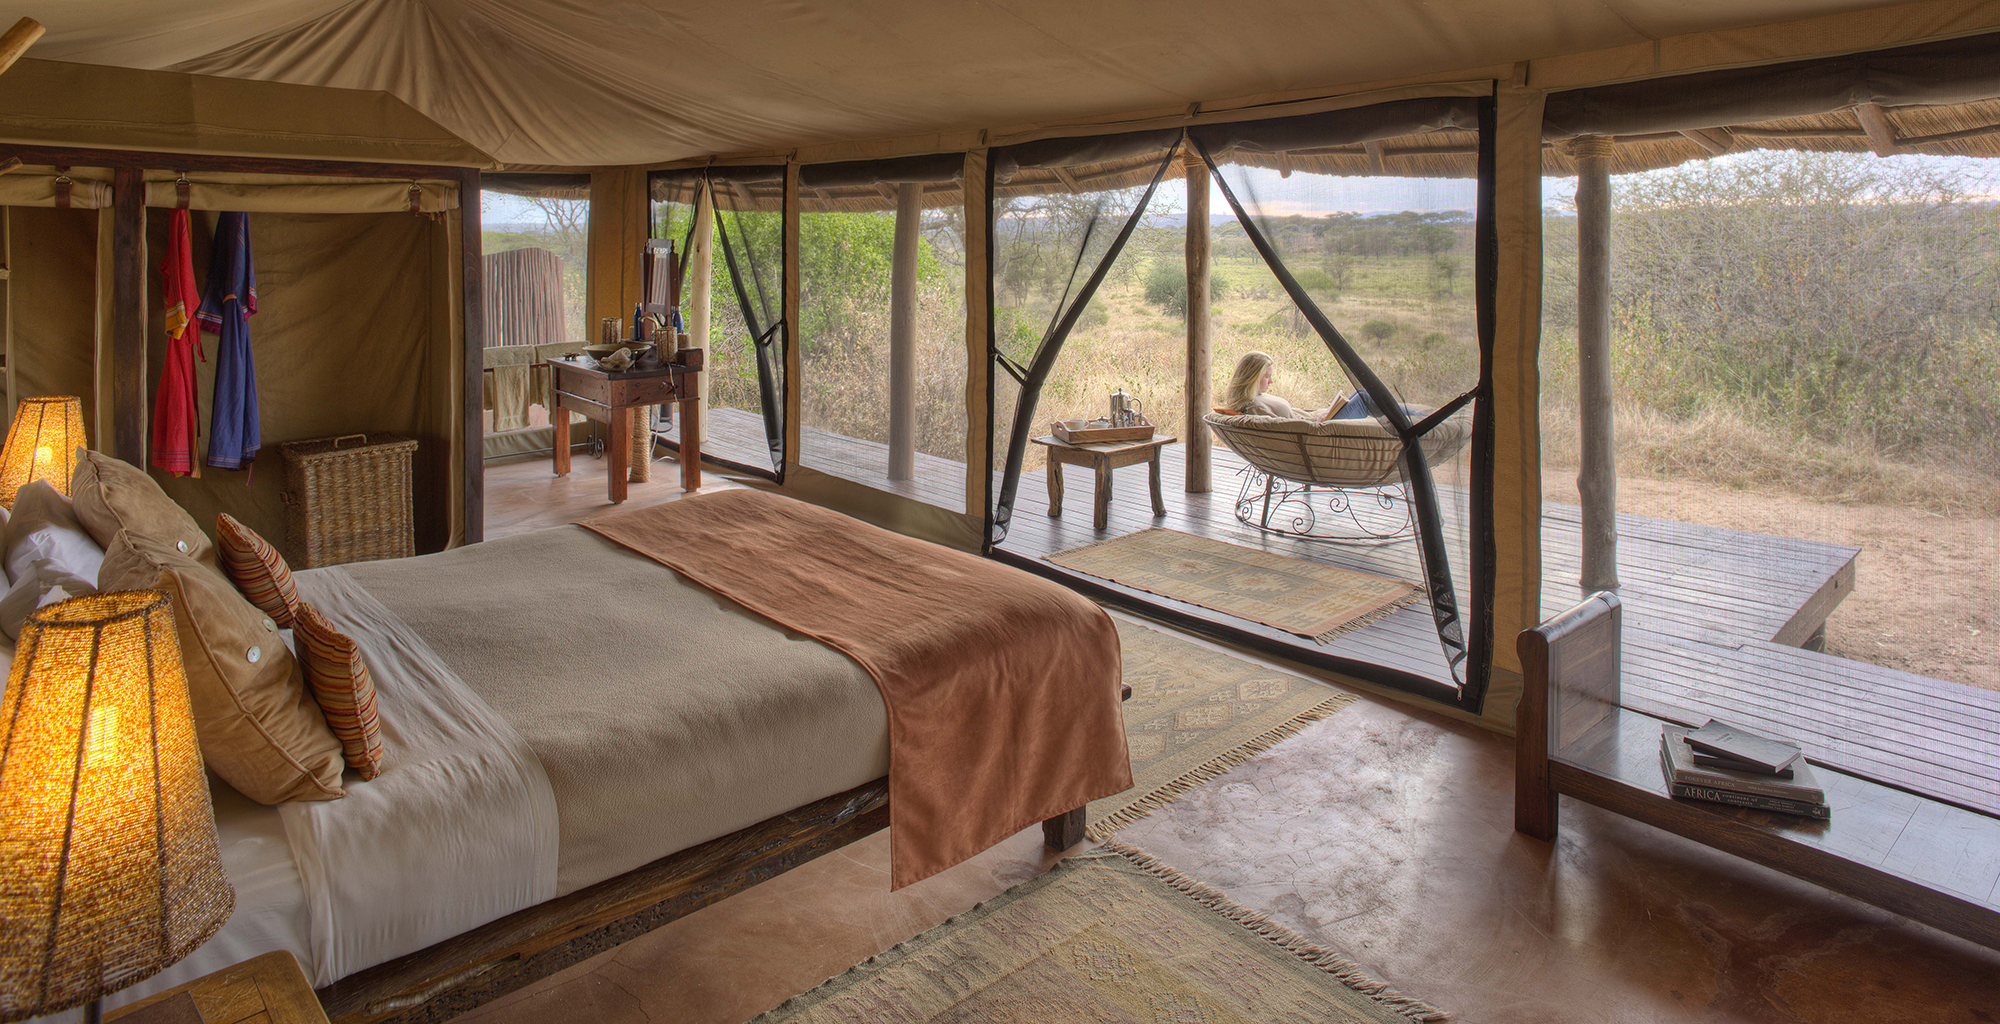 Tanzania-Olivers-Tented-Camp-Bedroom-View